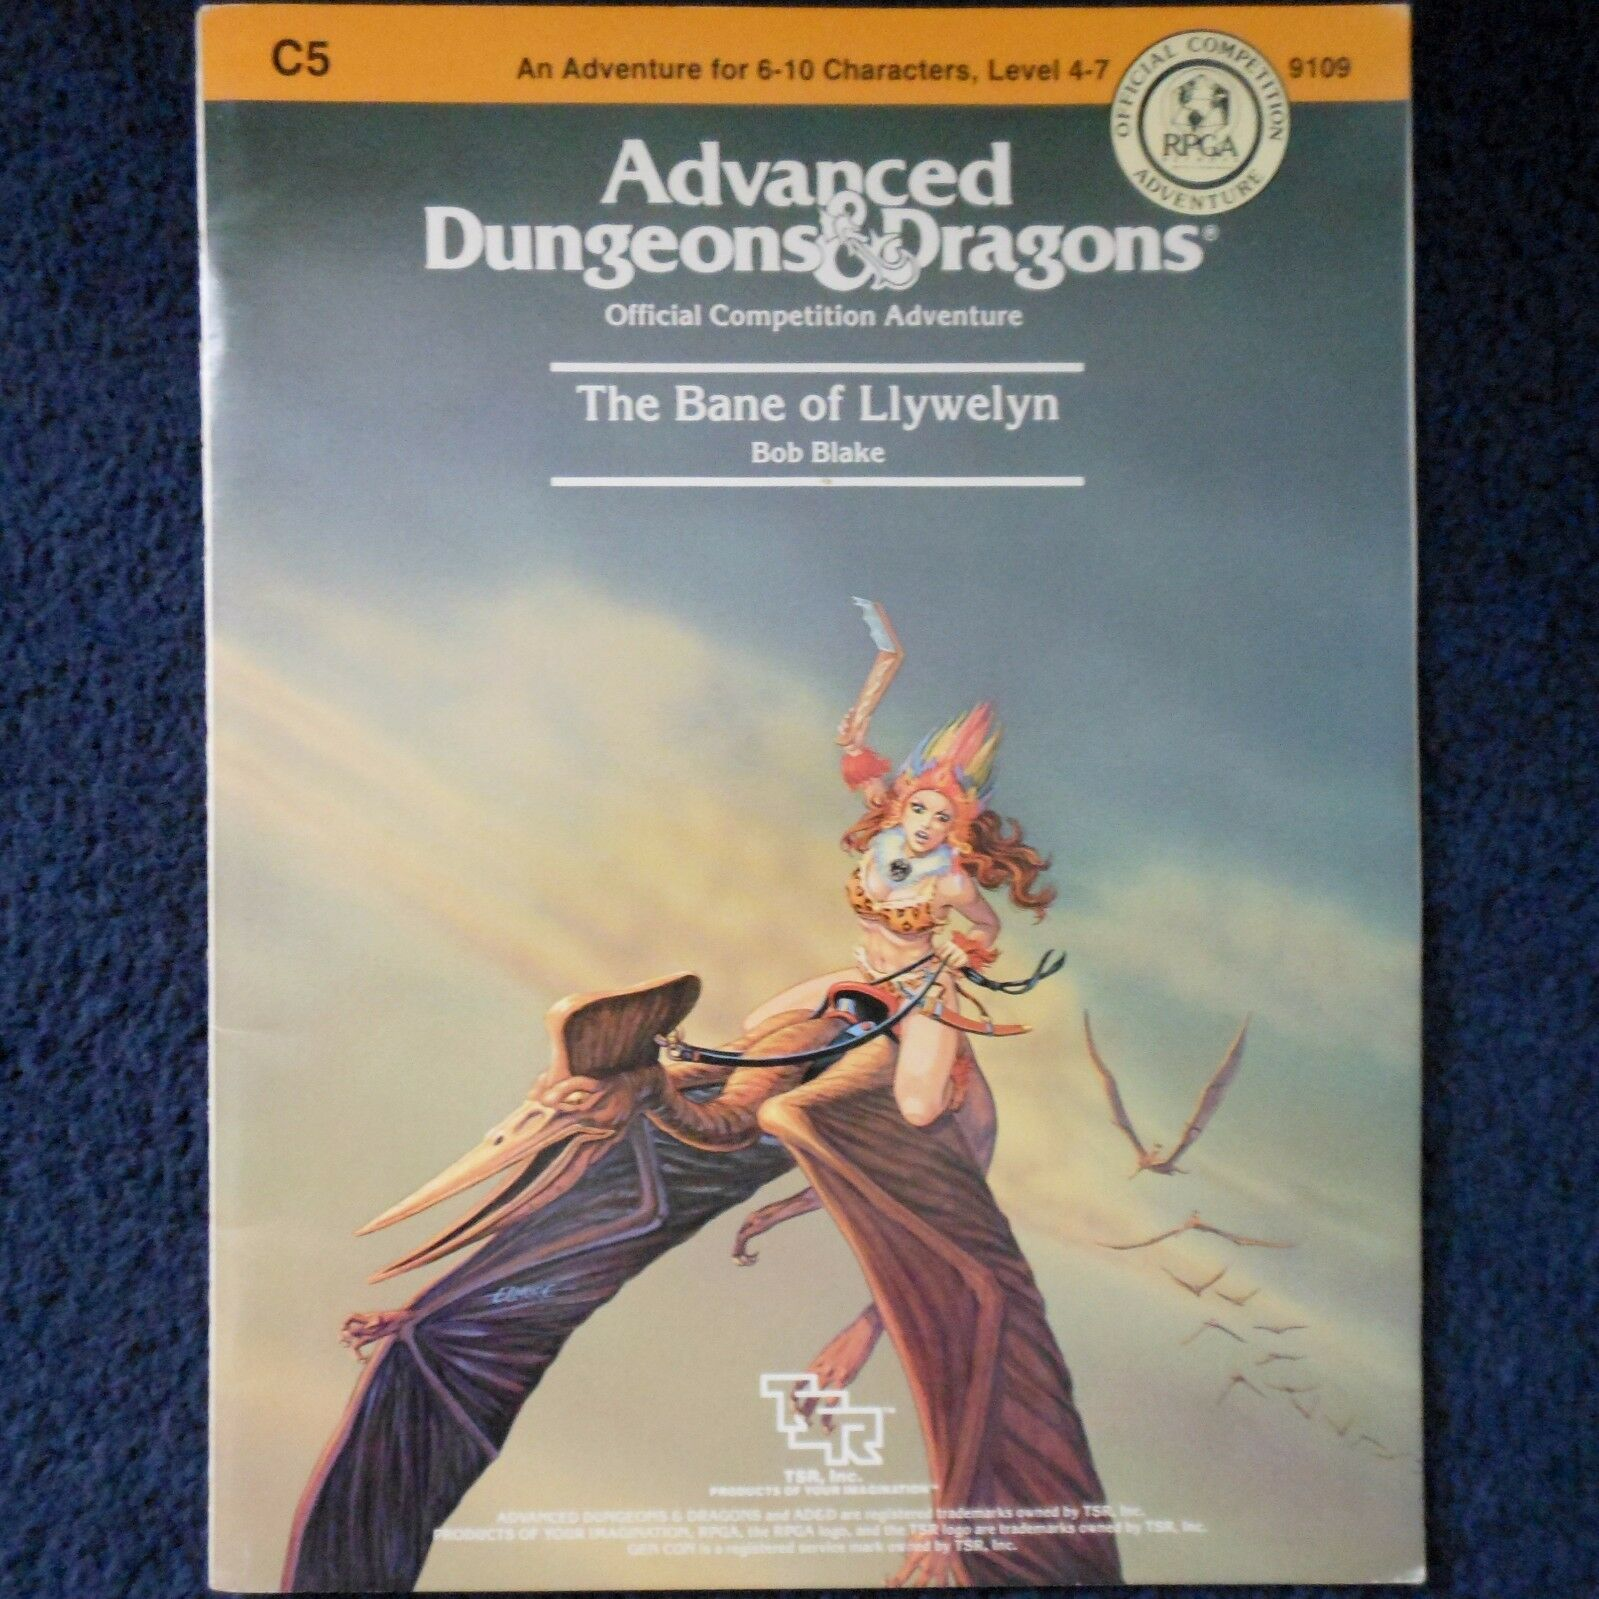 C5 The Bane of Llywelyn Advanced Dungeons & Dragons Adventure Module AD&D 9109